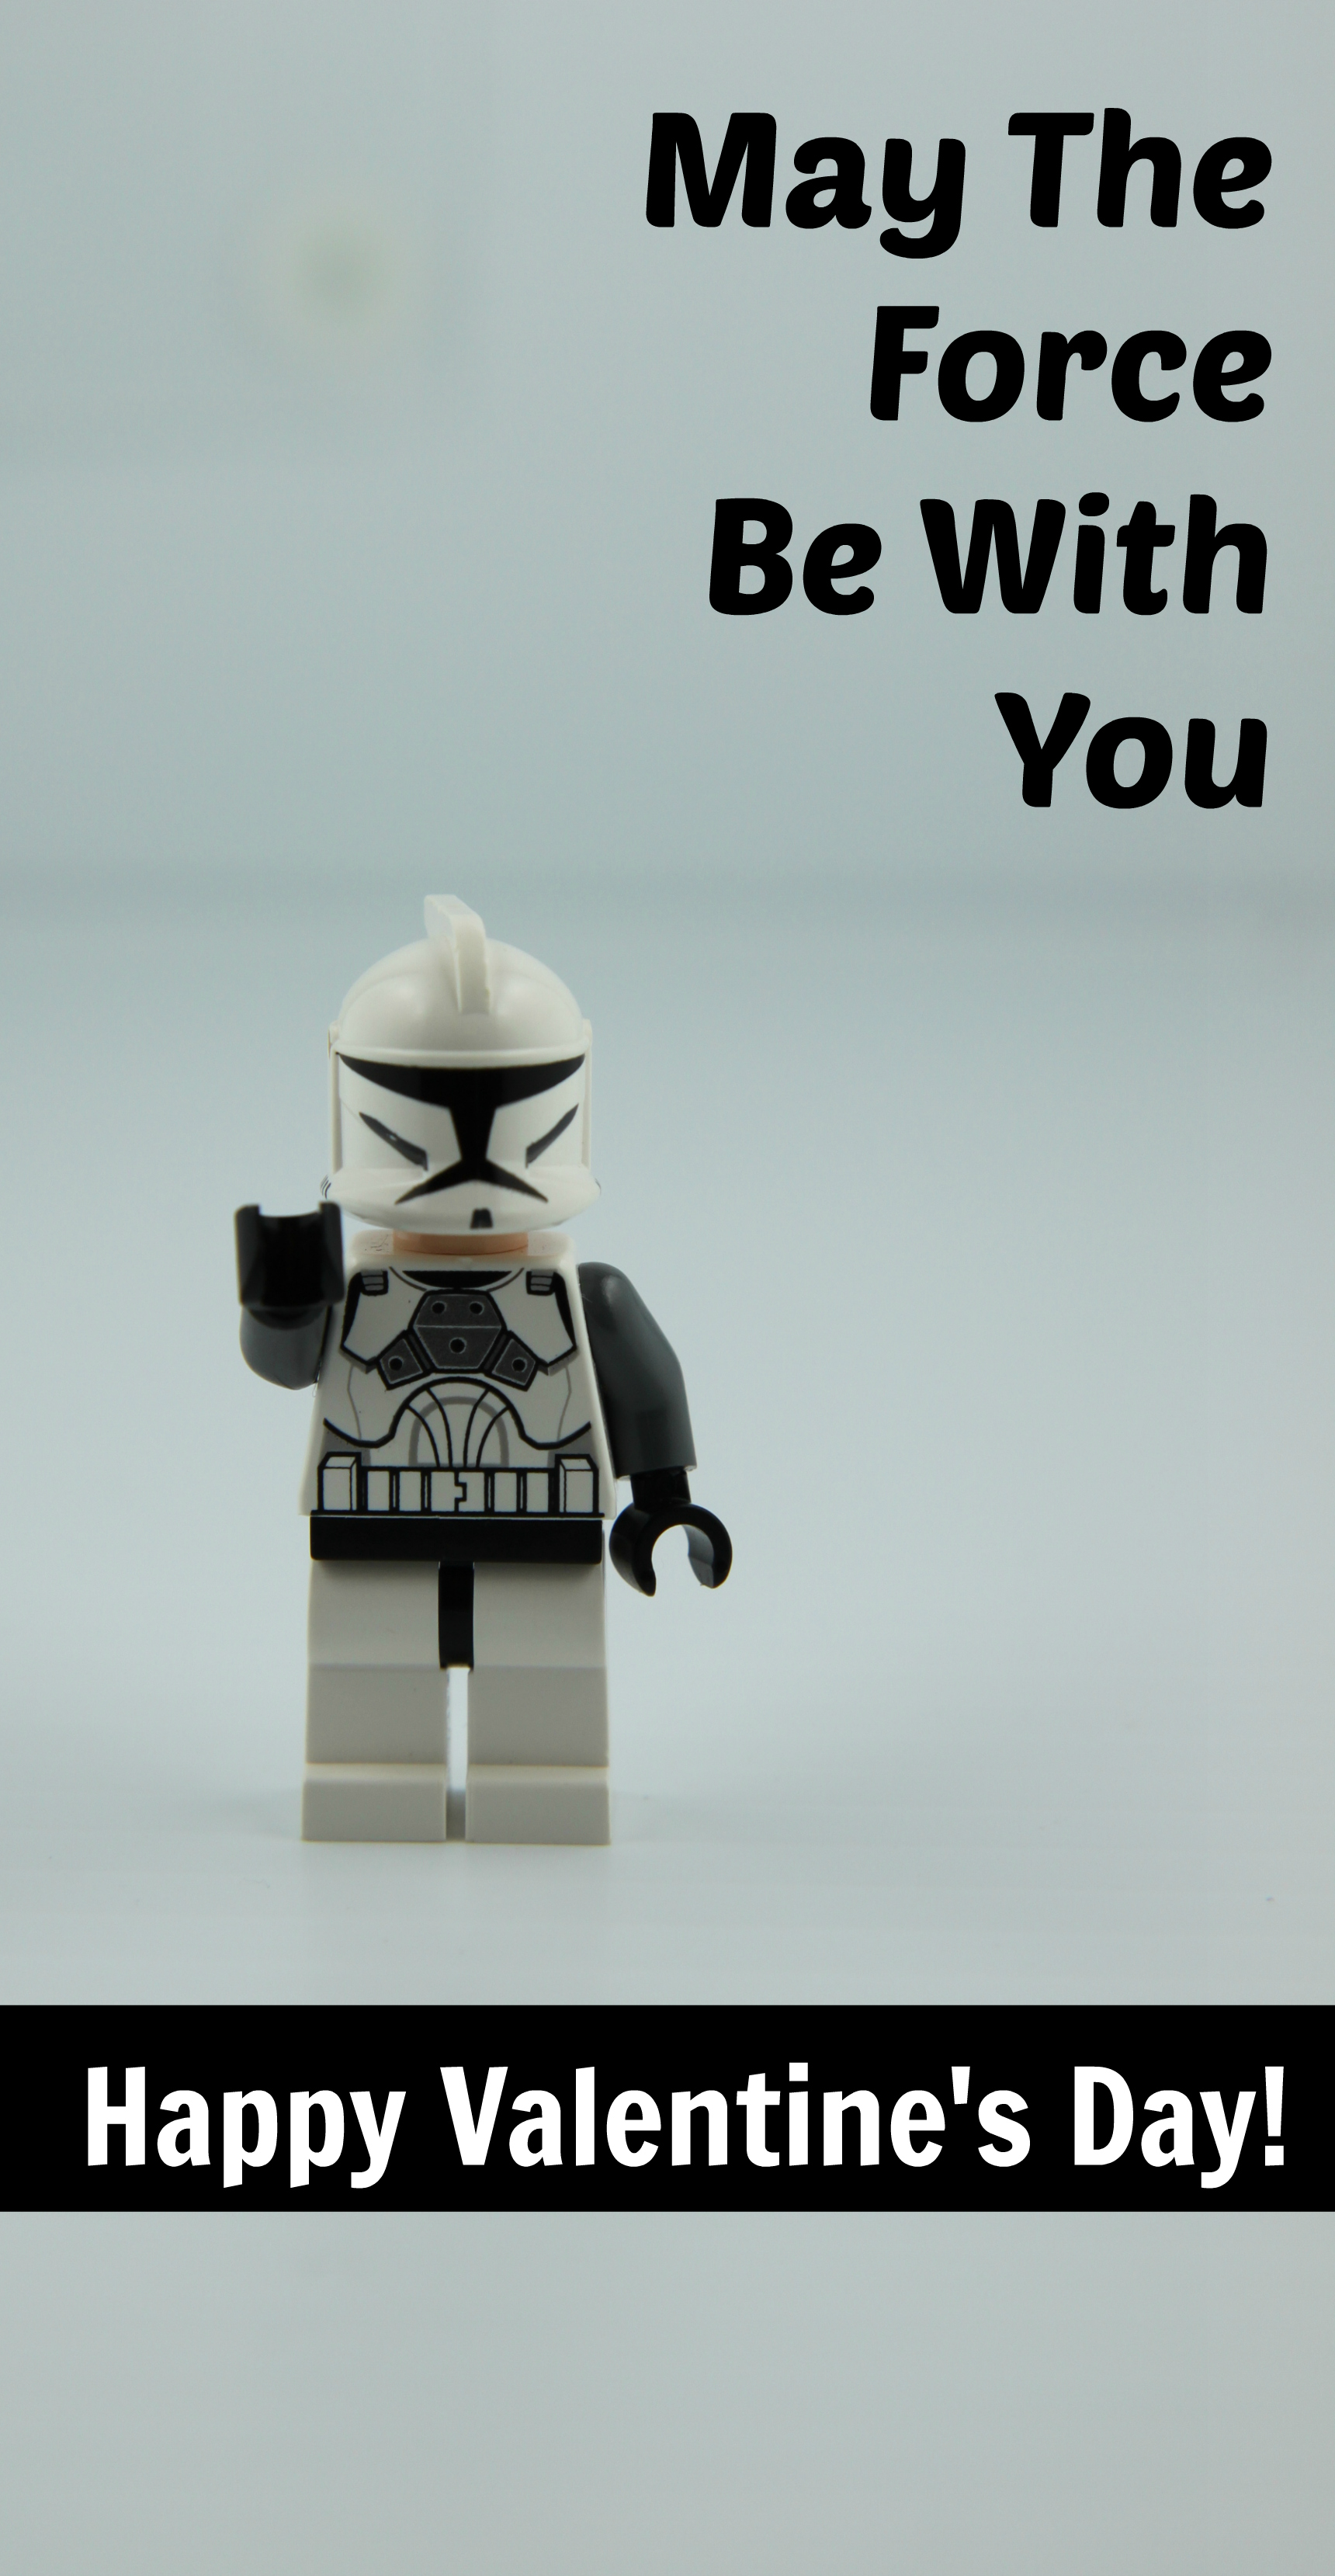 picture about Lightsaber Valentine Printable titled Do it yourself May perhaps the Pressure Be With Oneself Shine Adhere Star Wars Lego